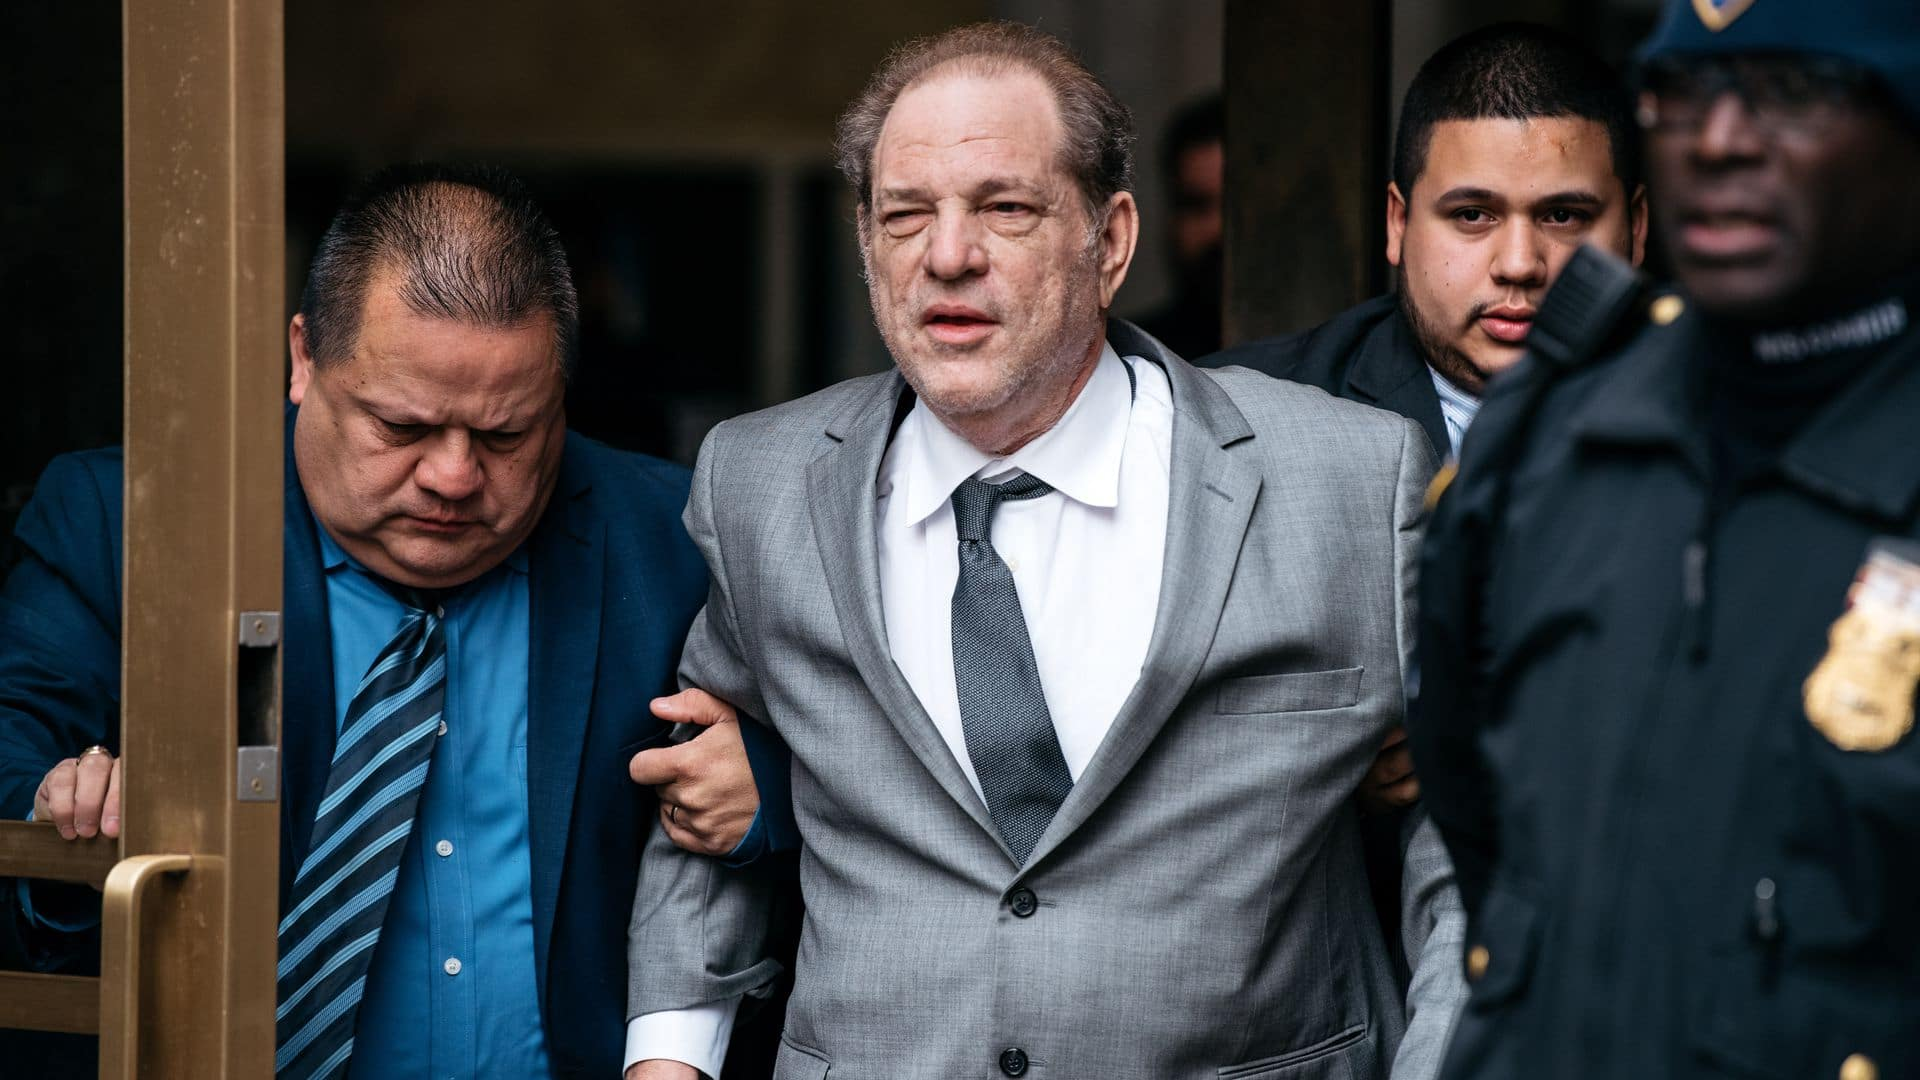 Harvey Weinstein Faces Yet Another Sexual Assault Charge After Recovering From COVID-19